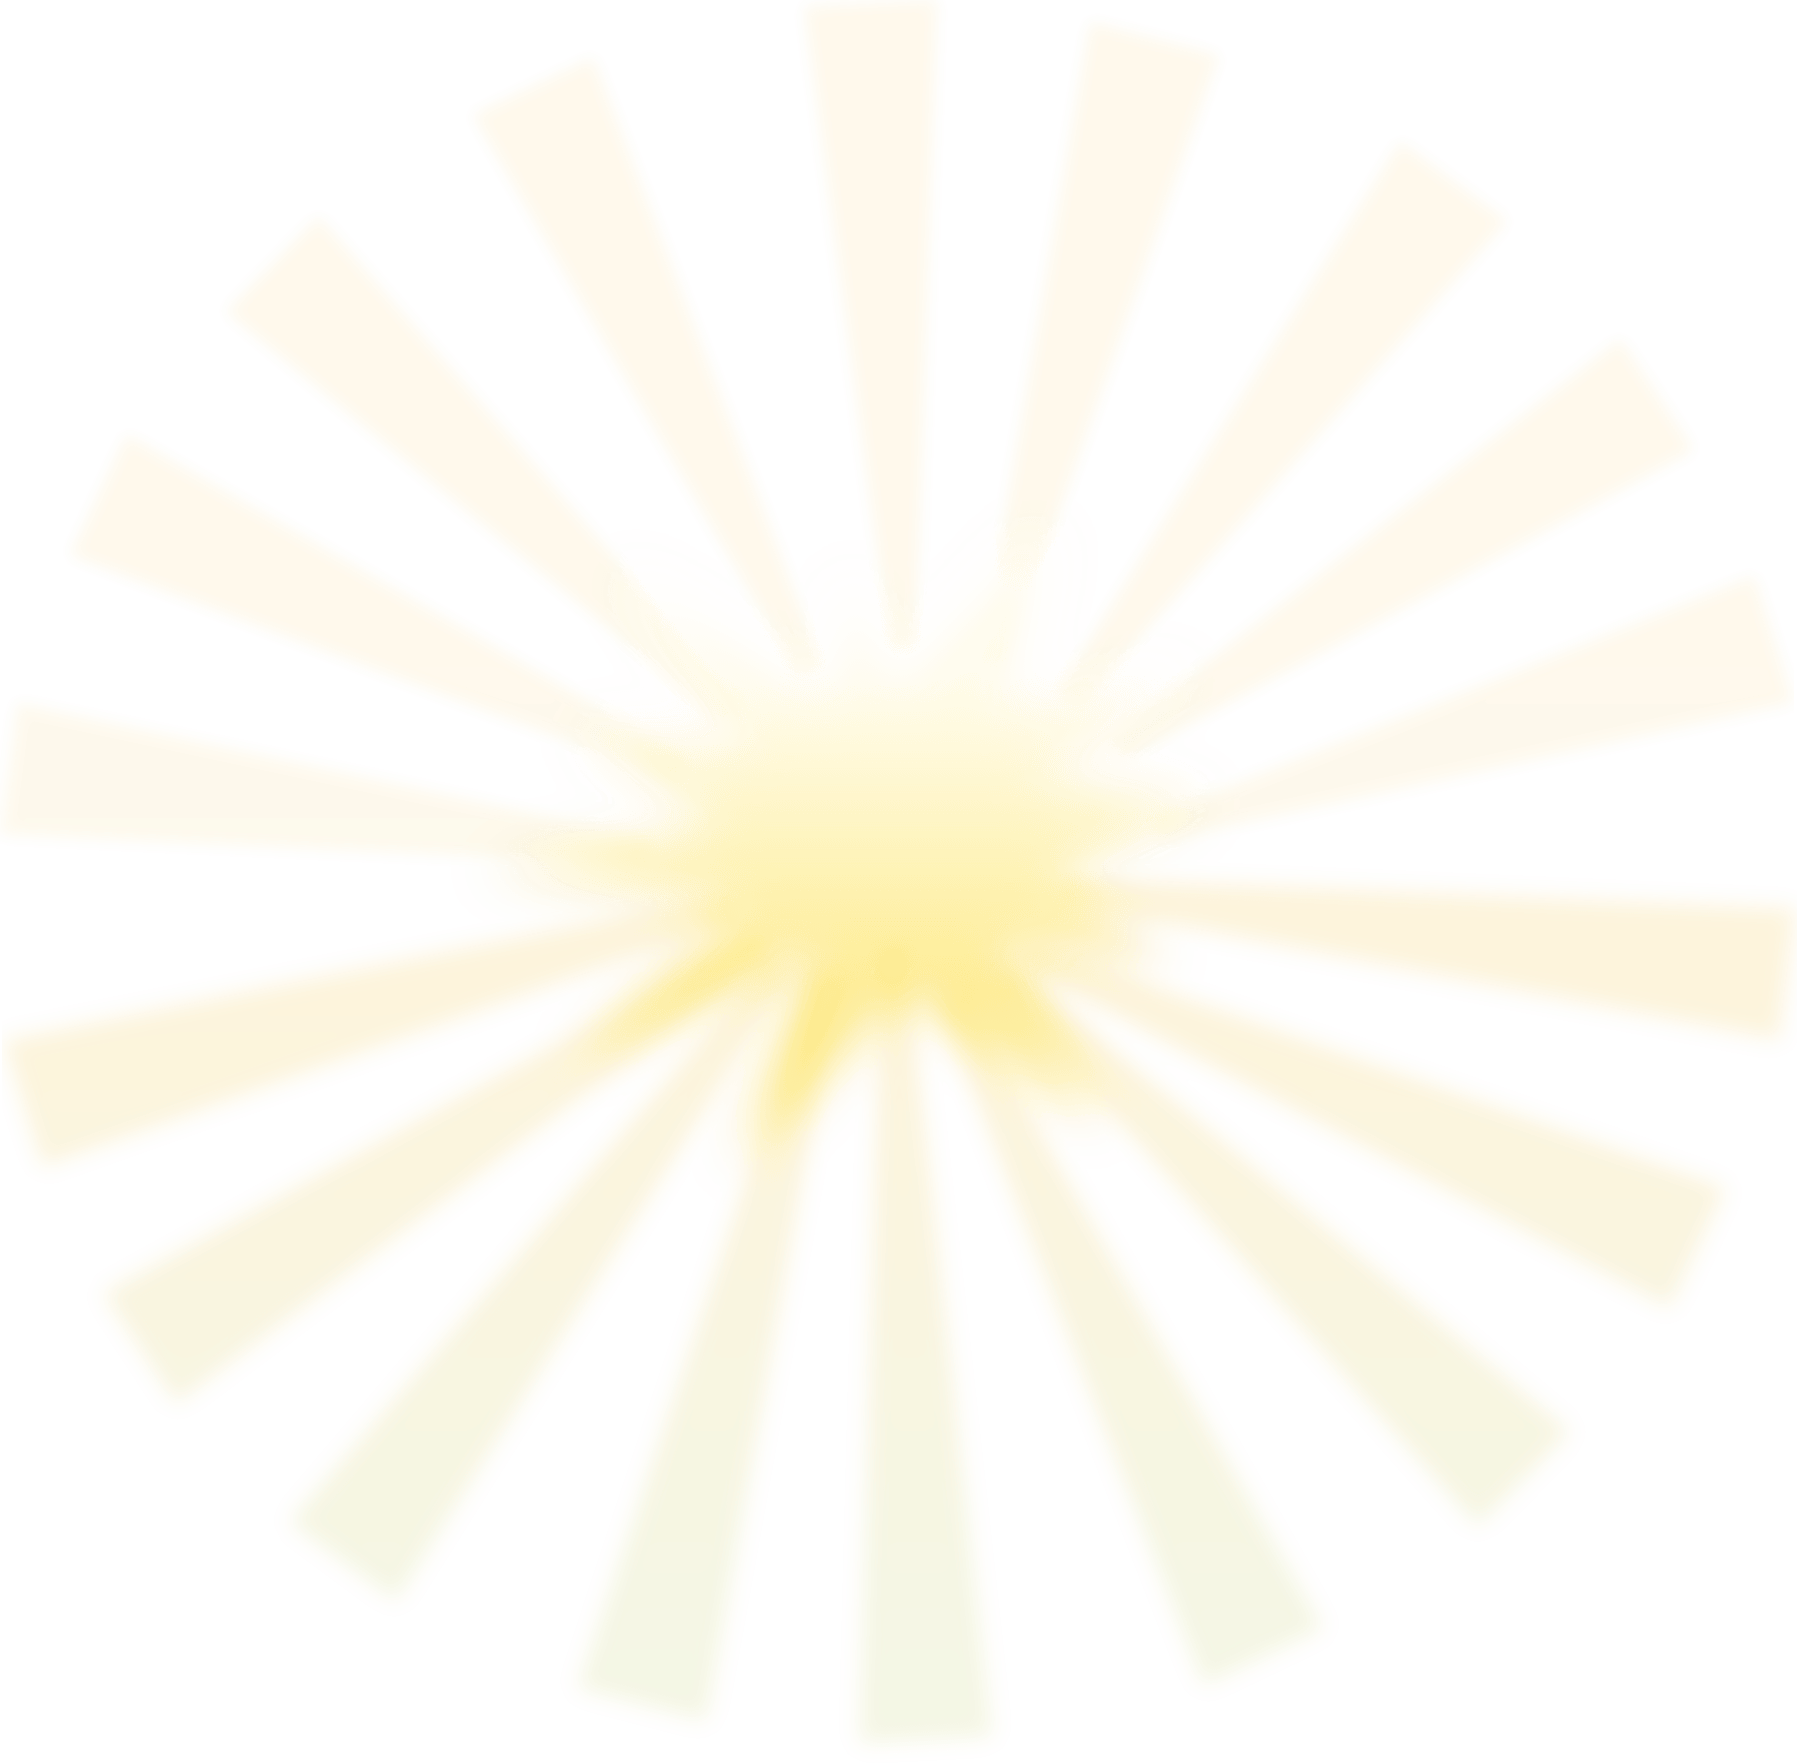 Light ray png. Hq transparent images pluspng